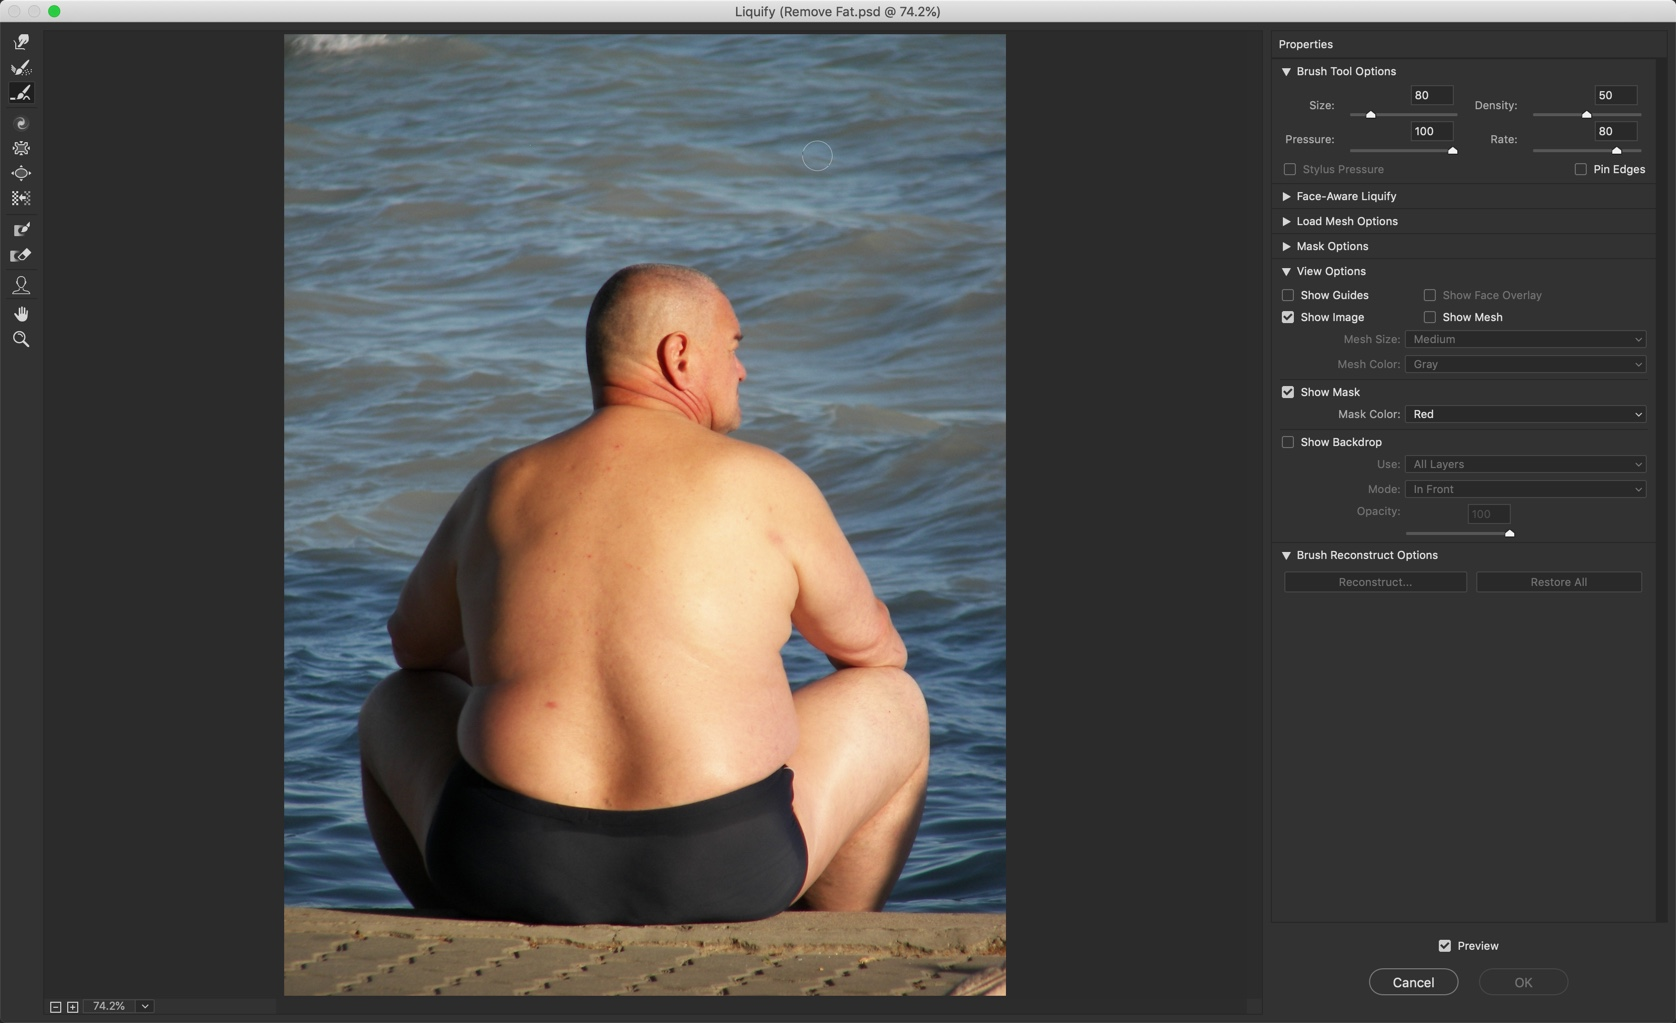 3-2 - The Ultimate Guide to Remove Fat in Photoshop